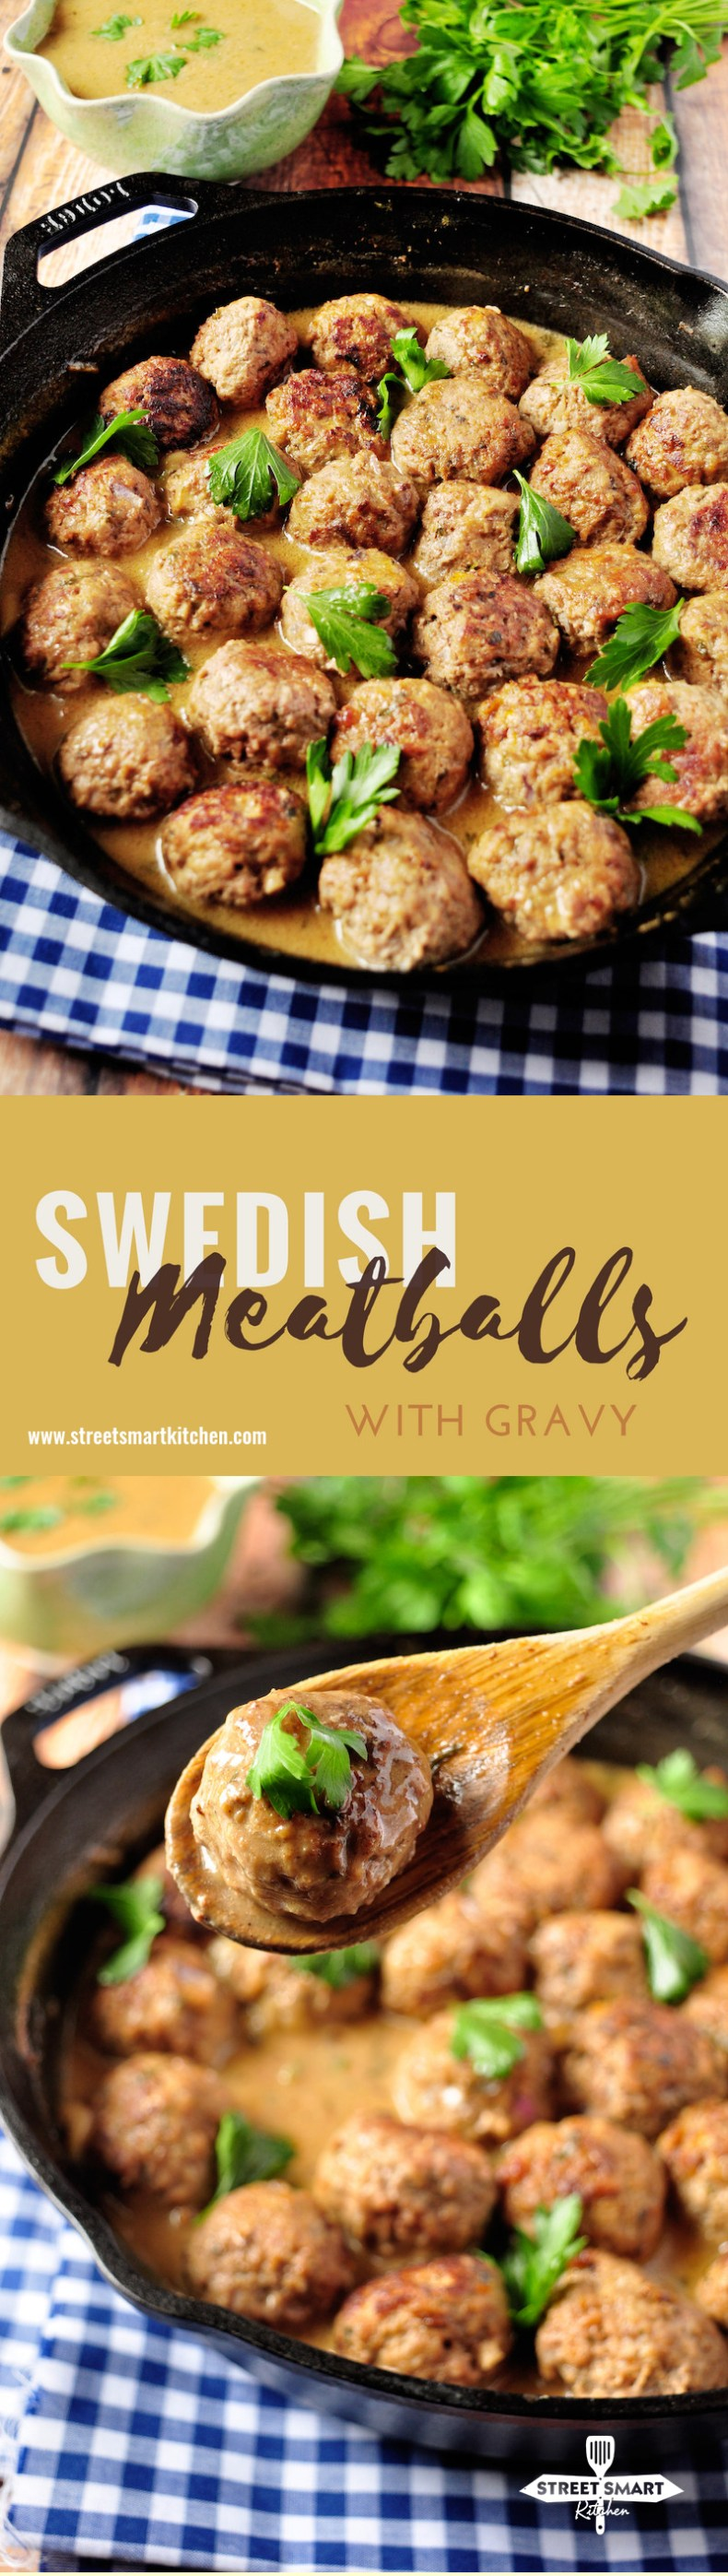 These Swedish meatballs are juicy, tender and uber flavorful. This recipe provides you a decent amount of savory gravy so that you can use it to fix a pasta meal or serve over mashed potatoes. Make some more meatballs to freeze for later.